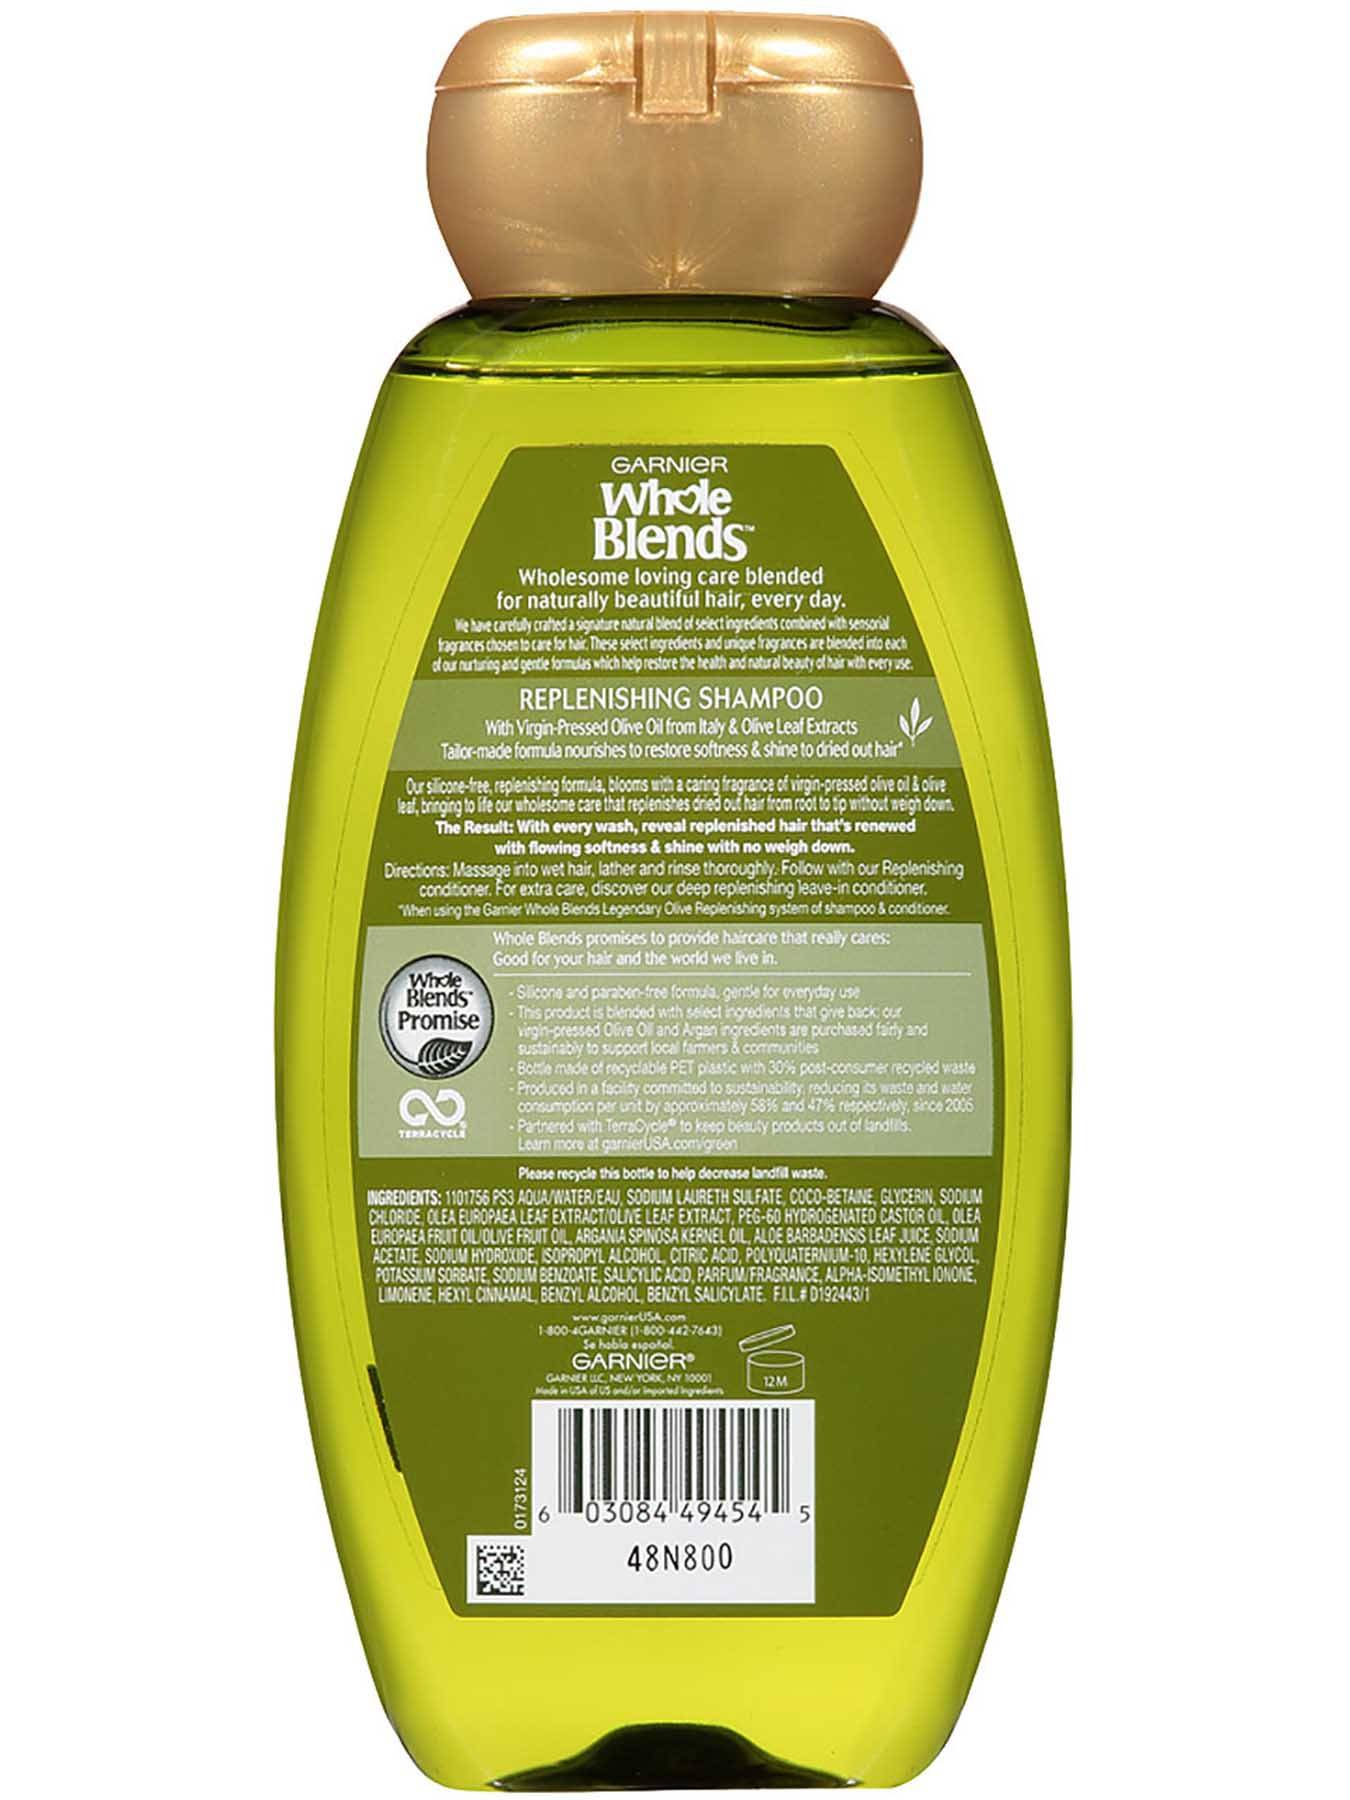 Garnier Whole Blends Replenishing Shampoo Legendary Olive Virgin Olive Oil Olive Leaf Extracts